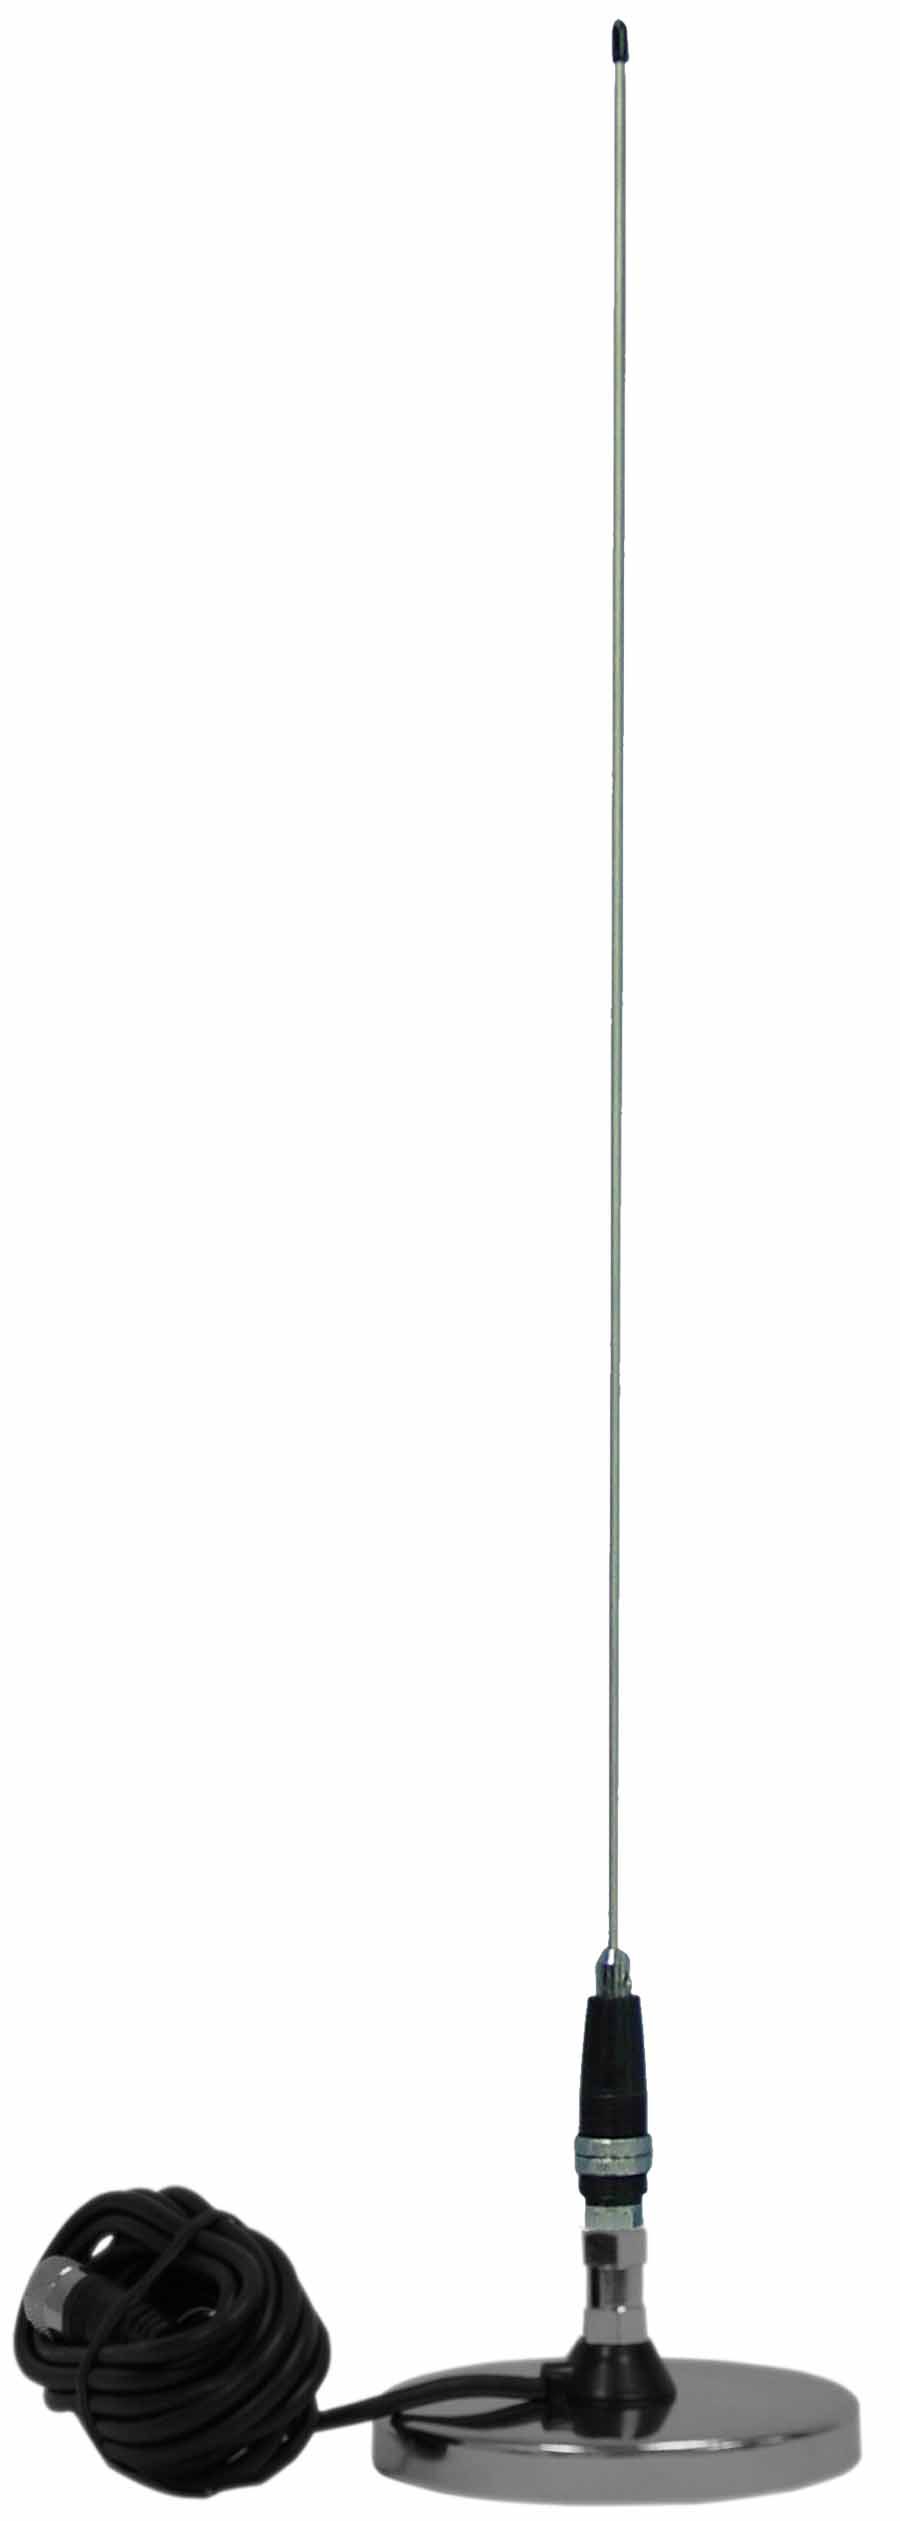 "JBC112-3600 - ProComm Kwik Tune 3' CB Antenna  with 3"" Magnet & 12' Coax"